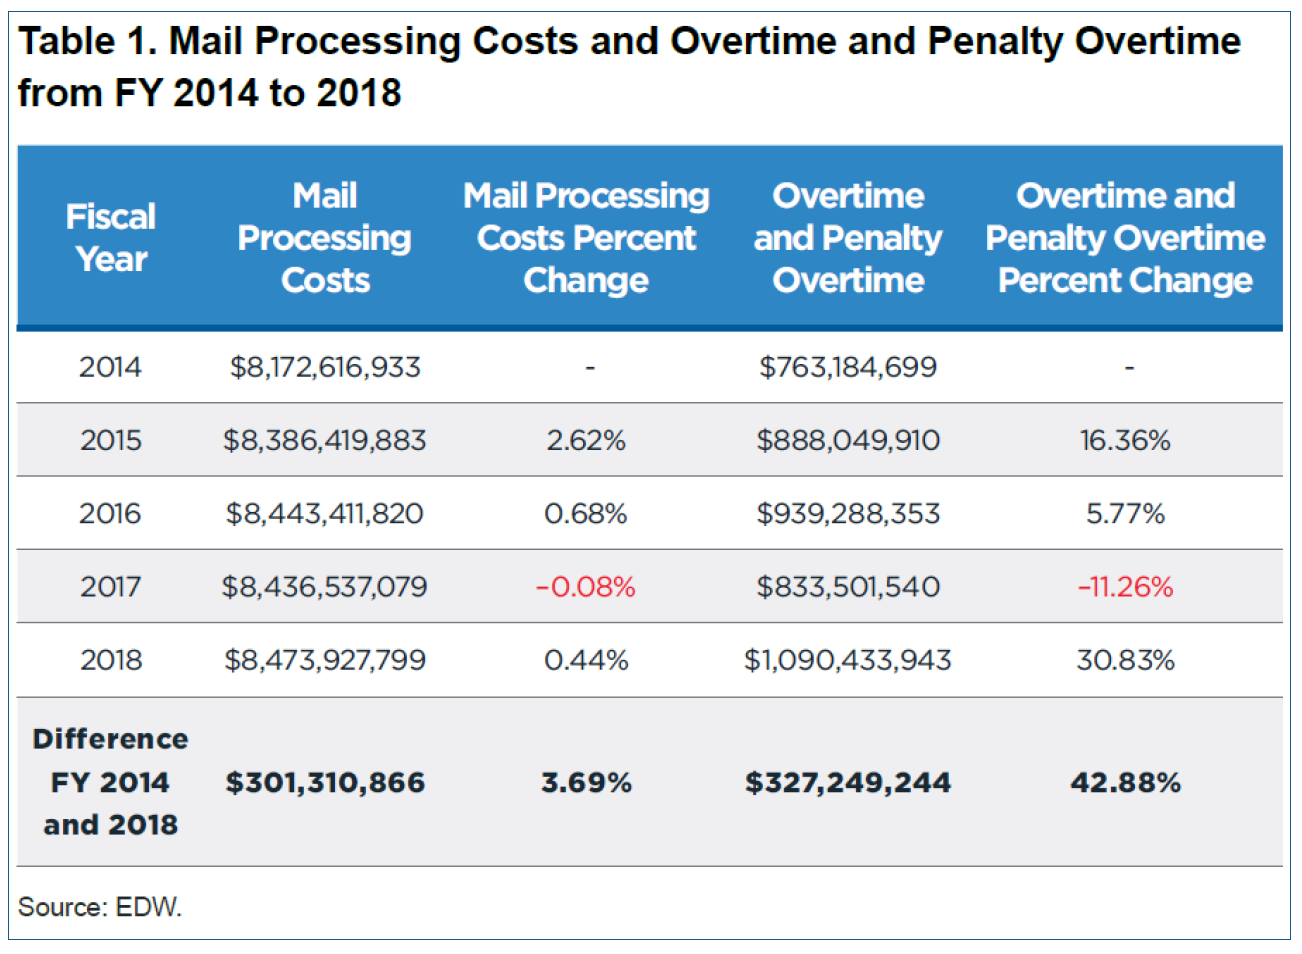 Mail Processing Costs, Overtime and Penalty Overtime FY 2014 - 2018